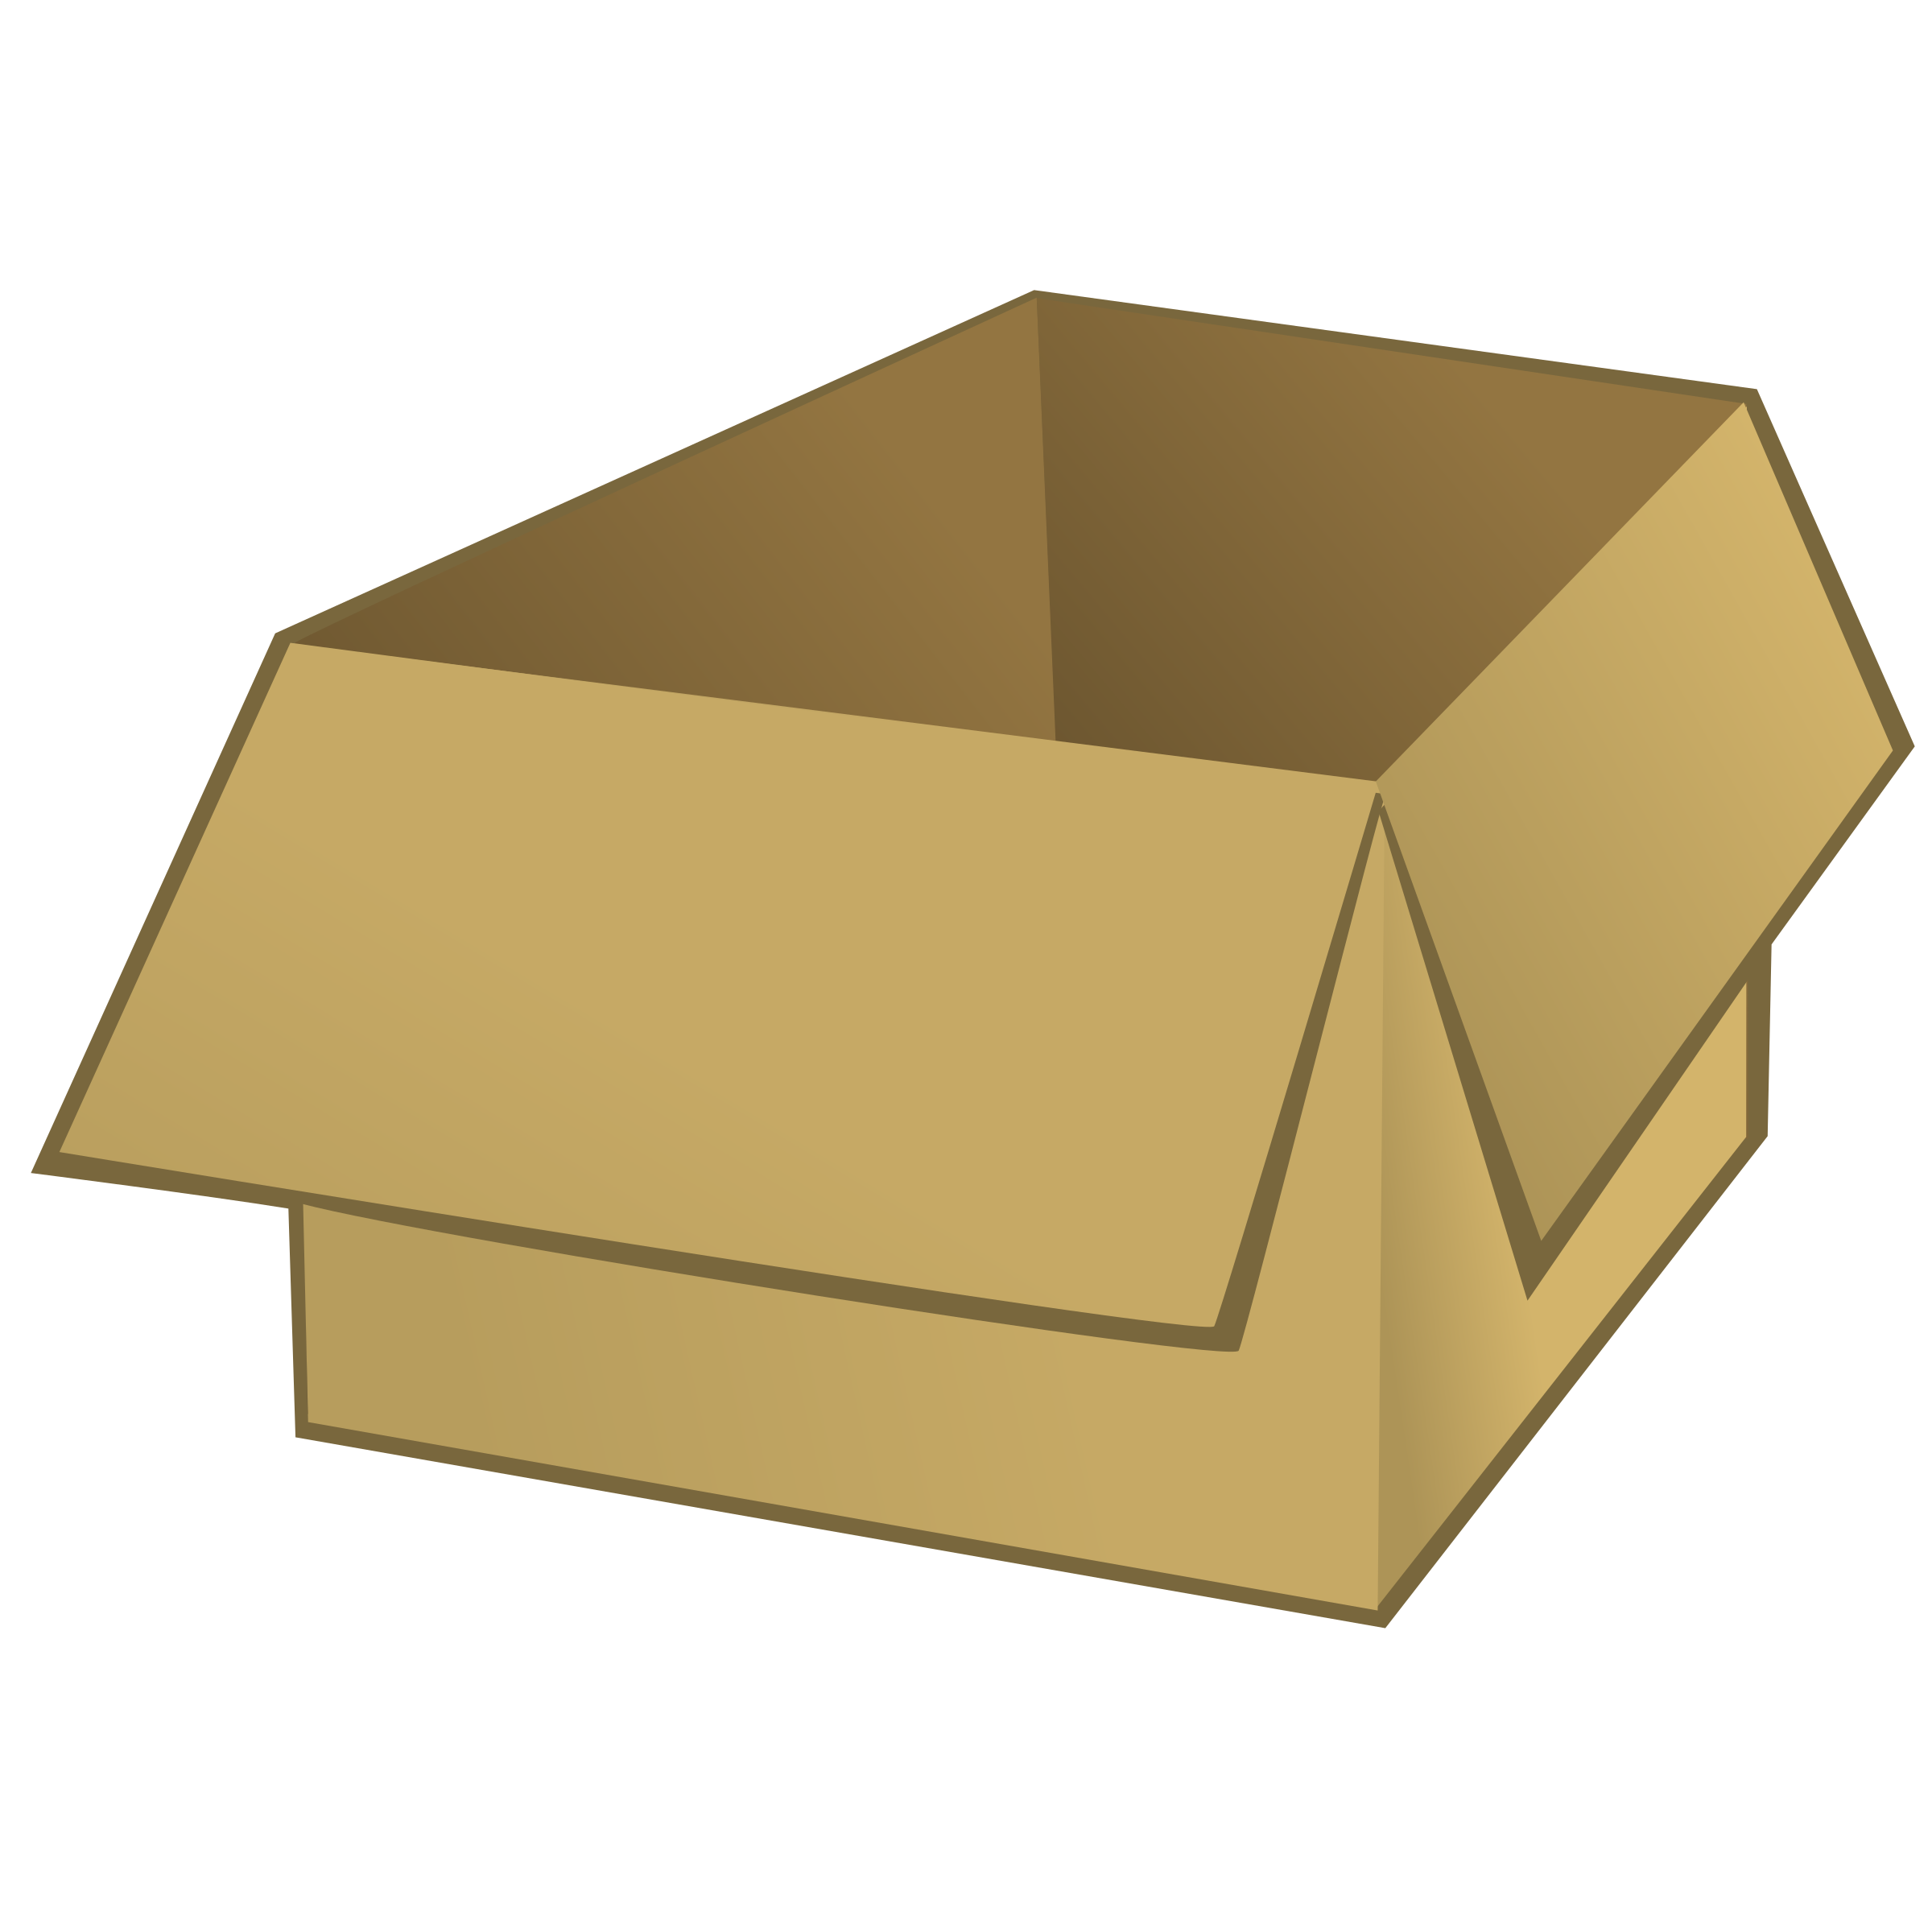 Box clipart png. Collection of high